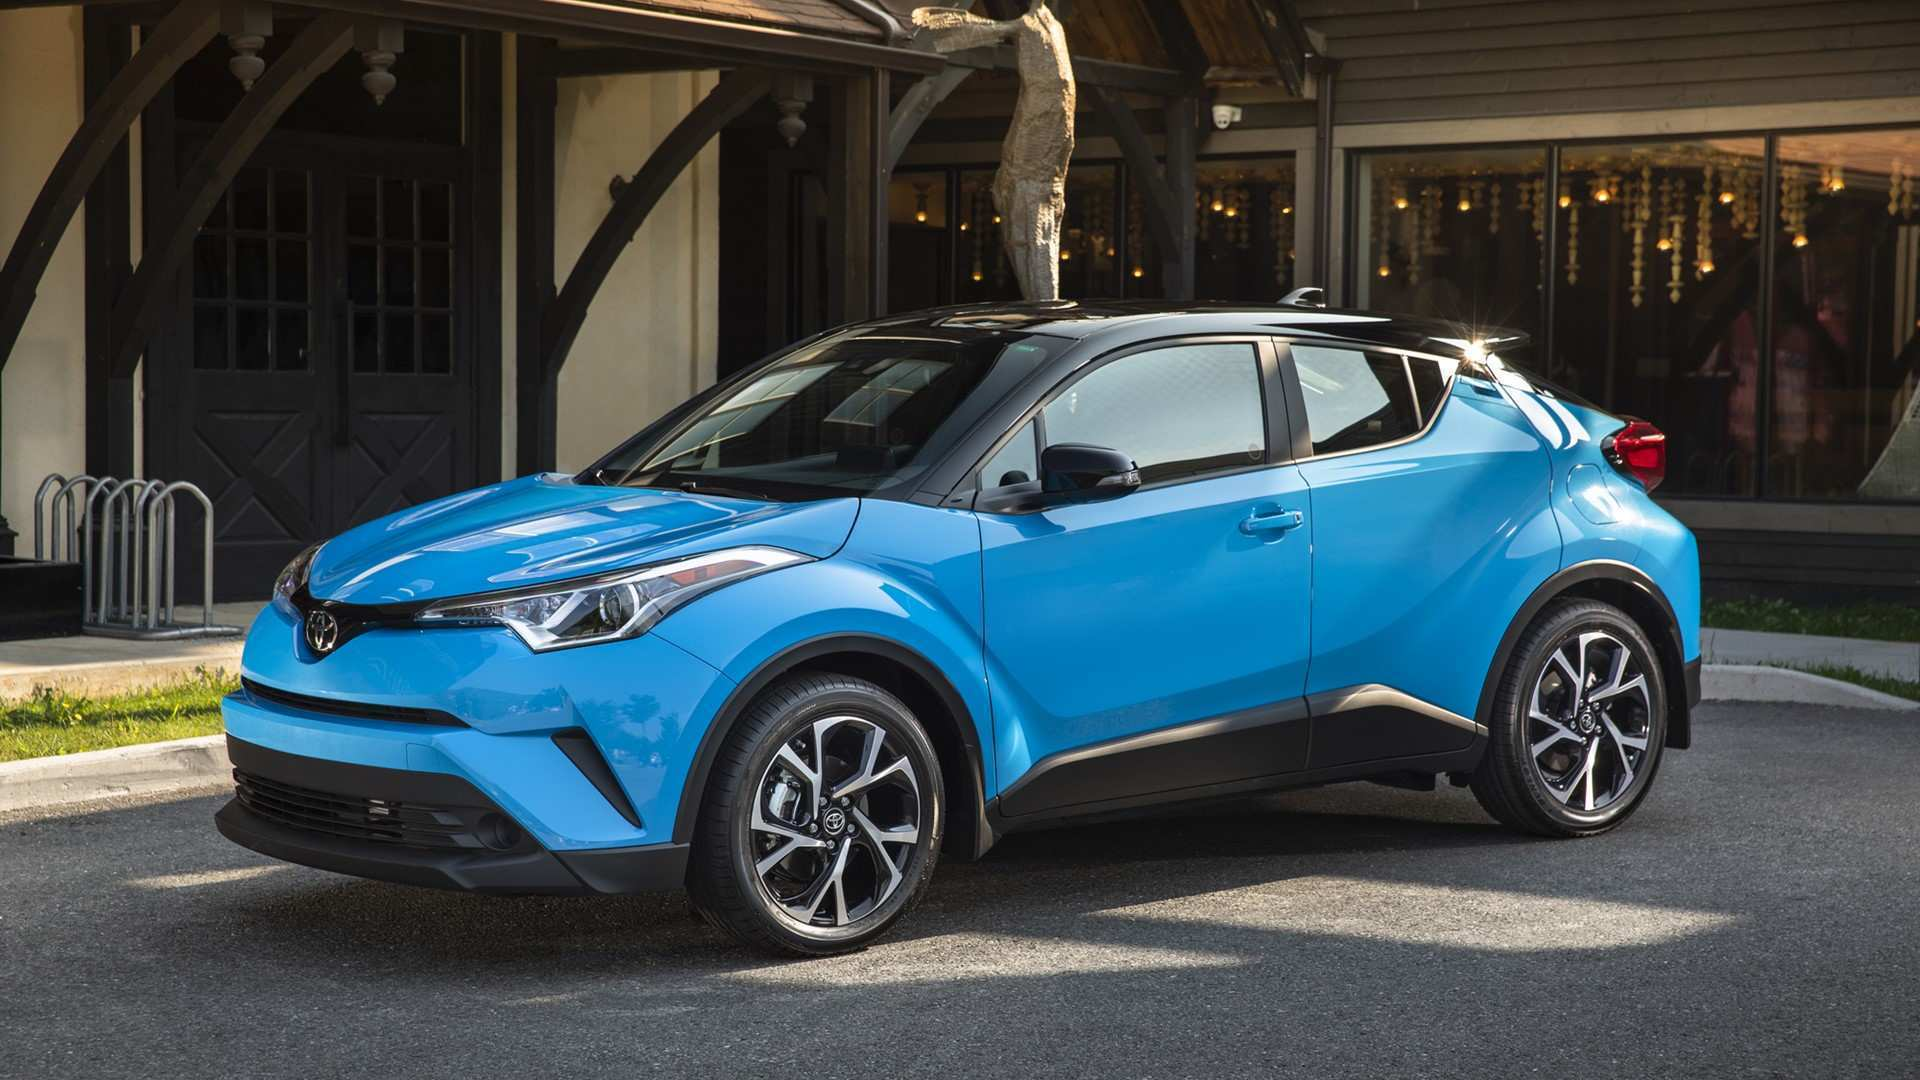 63 Best Review 2019 Toyota Lineup Photos with 2019 Toyota Lineup